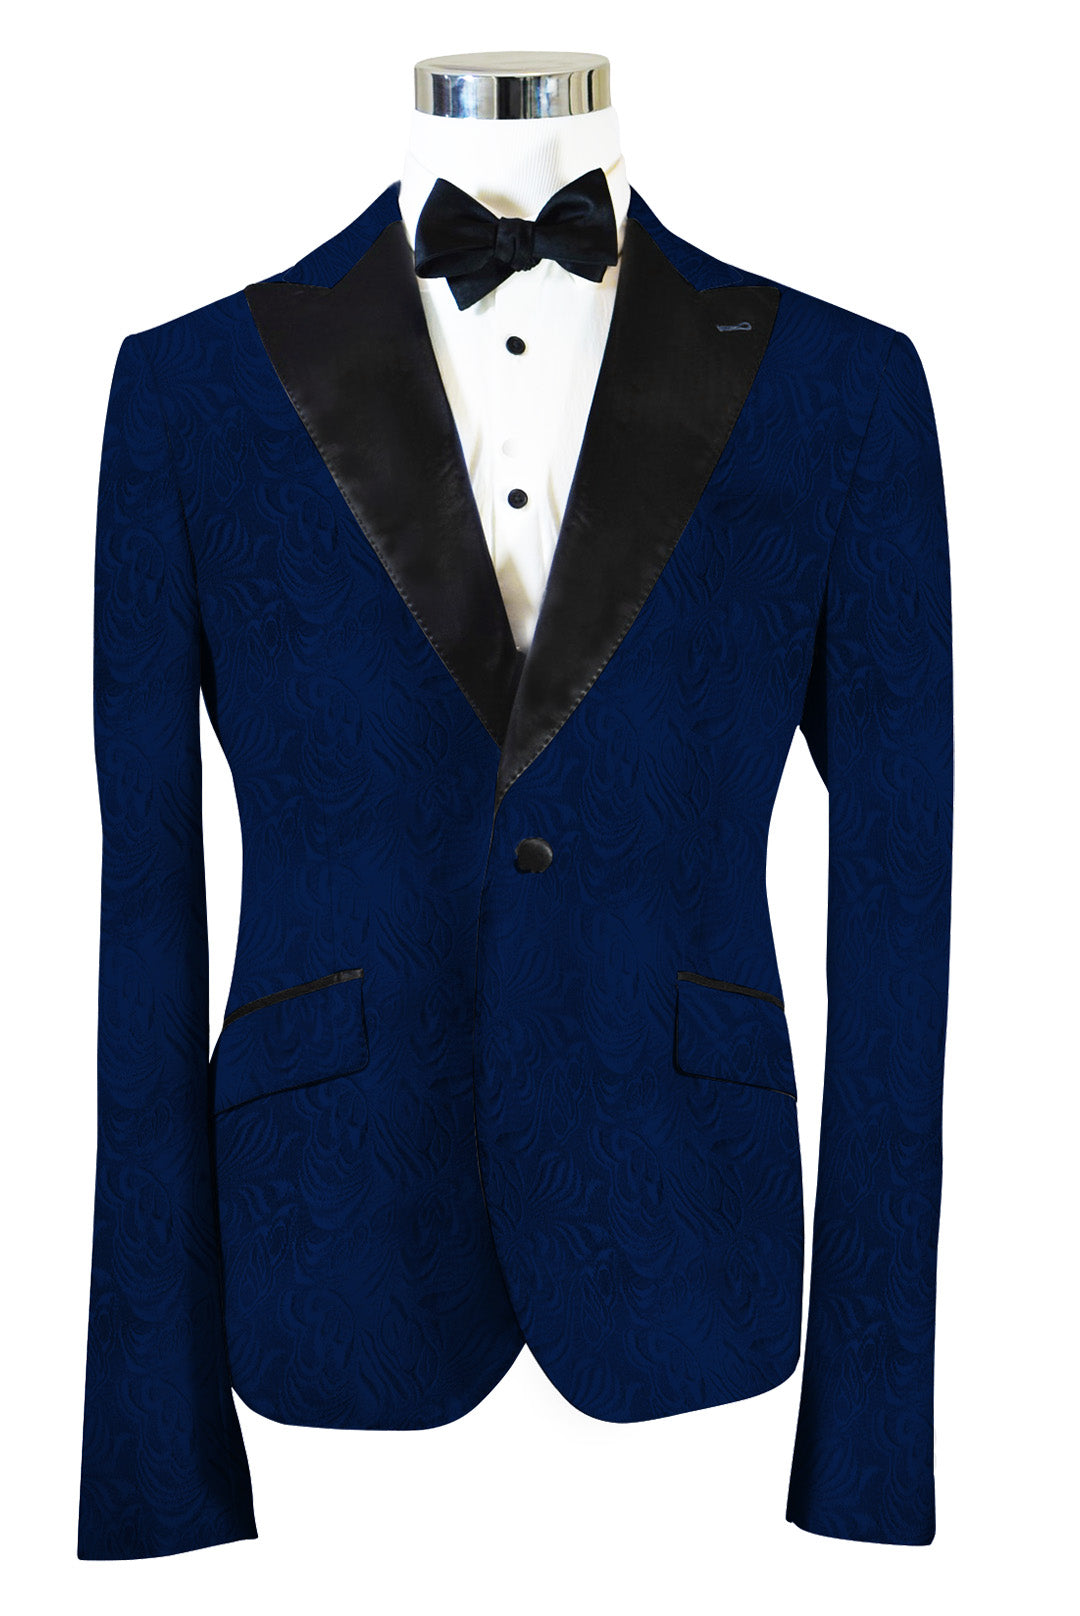 5ee4cecc65f3 The Regal Navy Blue Paisley Dinner Jacket - Legacy Lapels